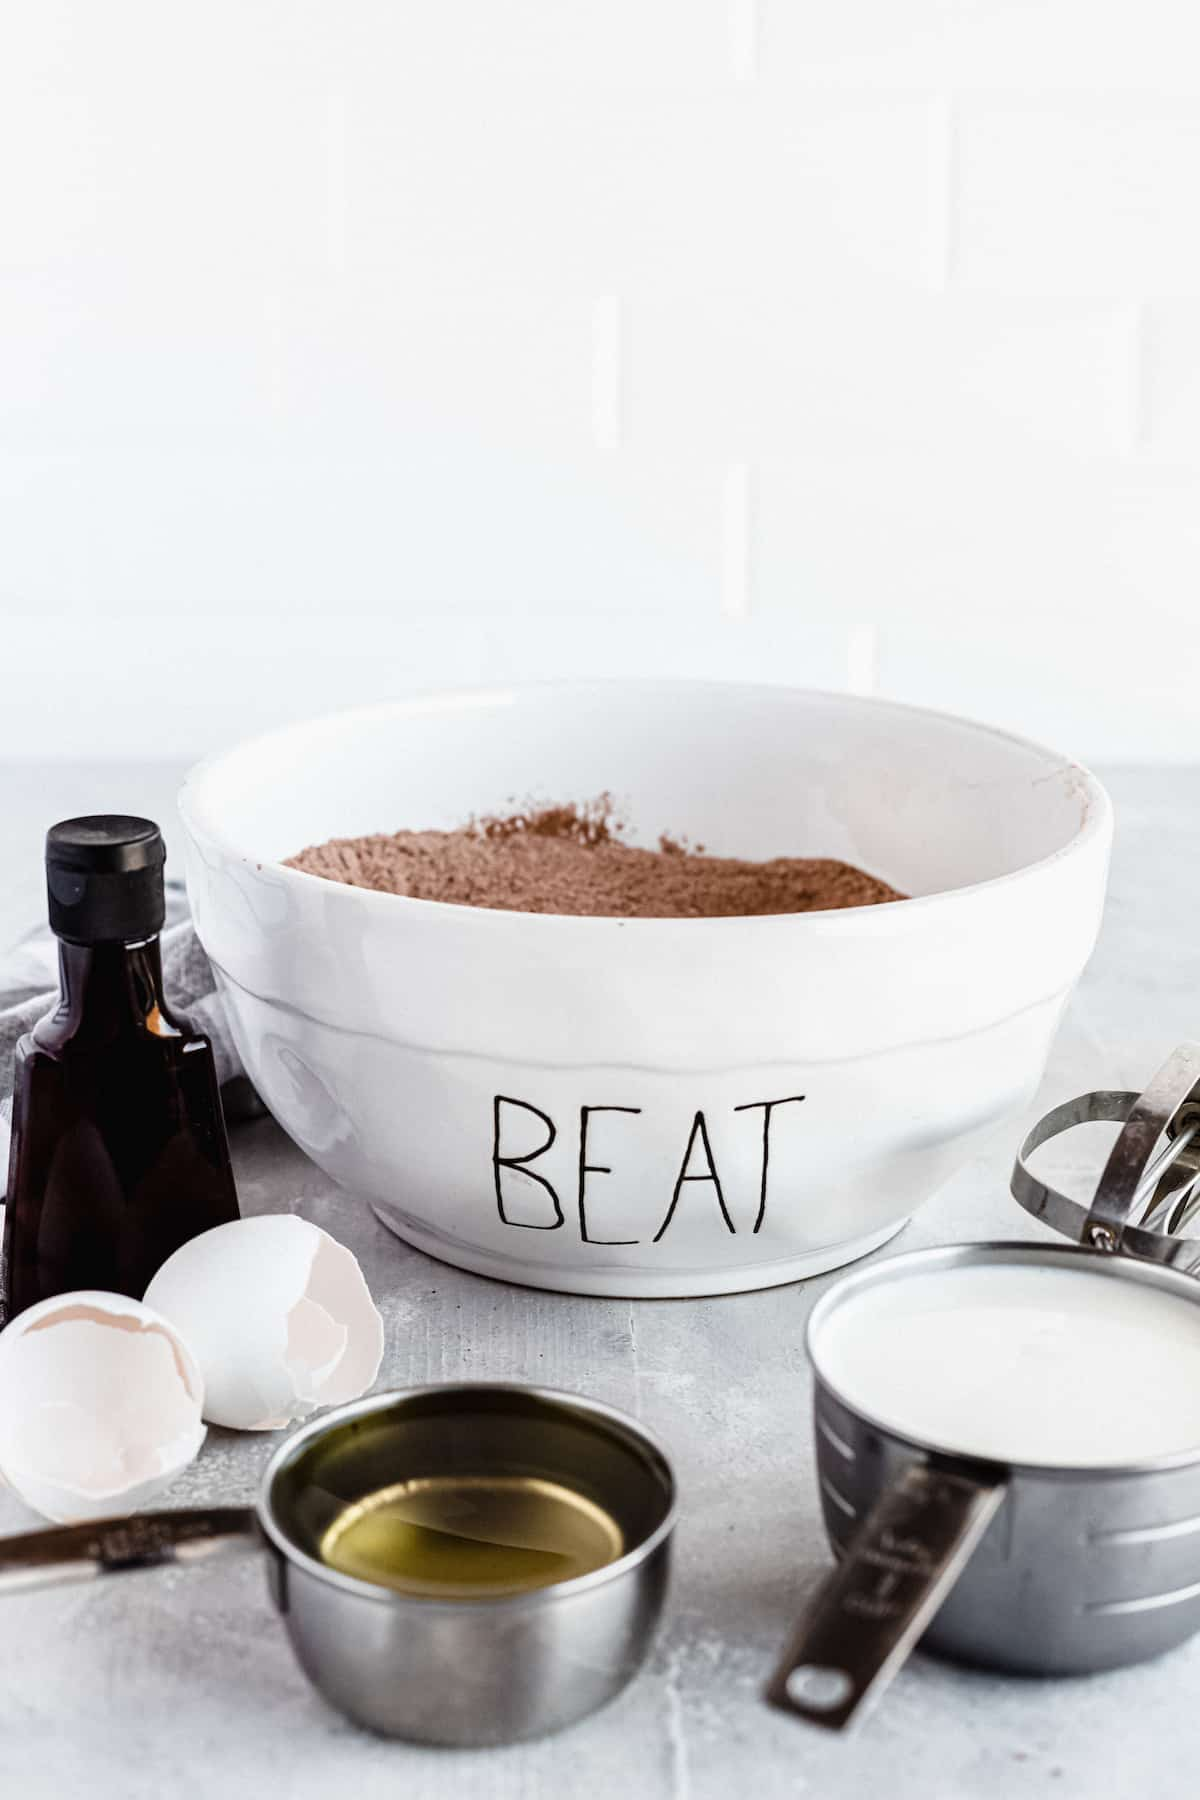 A Mixture of the Dry Ingredients for Homemade Chocolate Cake